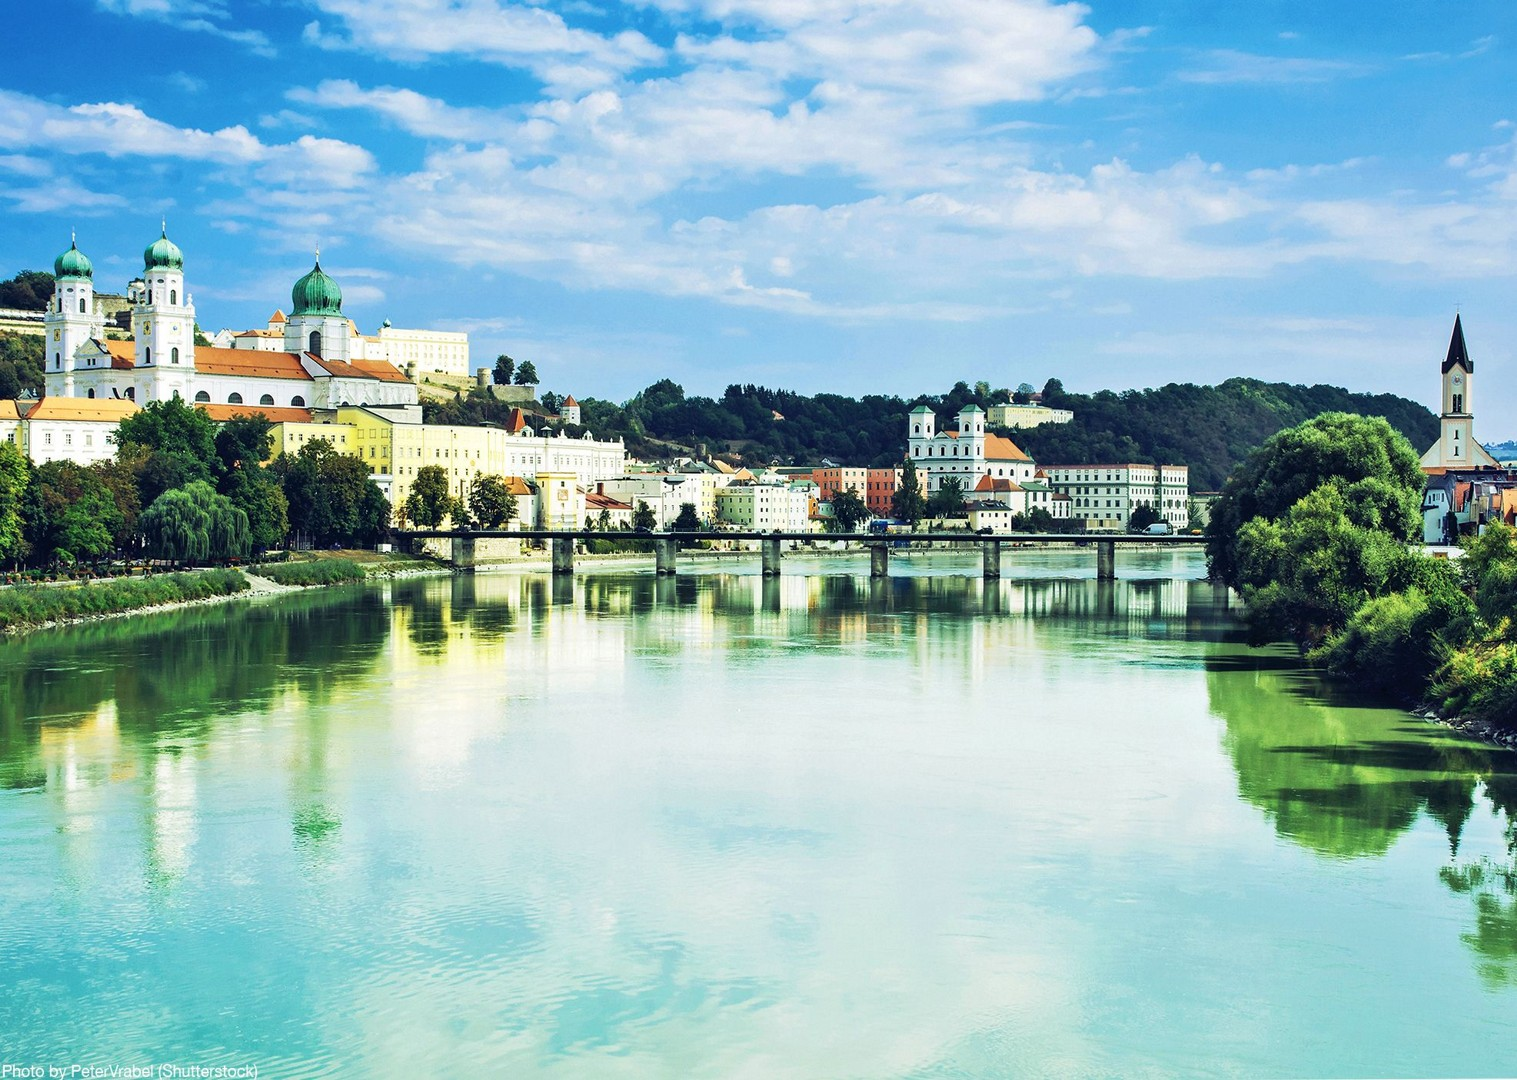 passau-bike-tour-danube-cycle-path-skedaddle.jpg - Germany and Austria - The Danube Cycle Path - Supported Leisure Cycling Holiday - Leisure Cycling